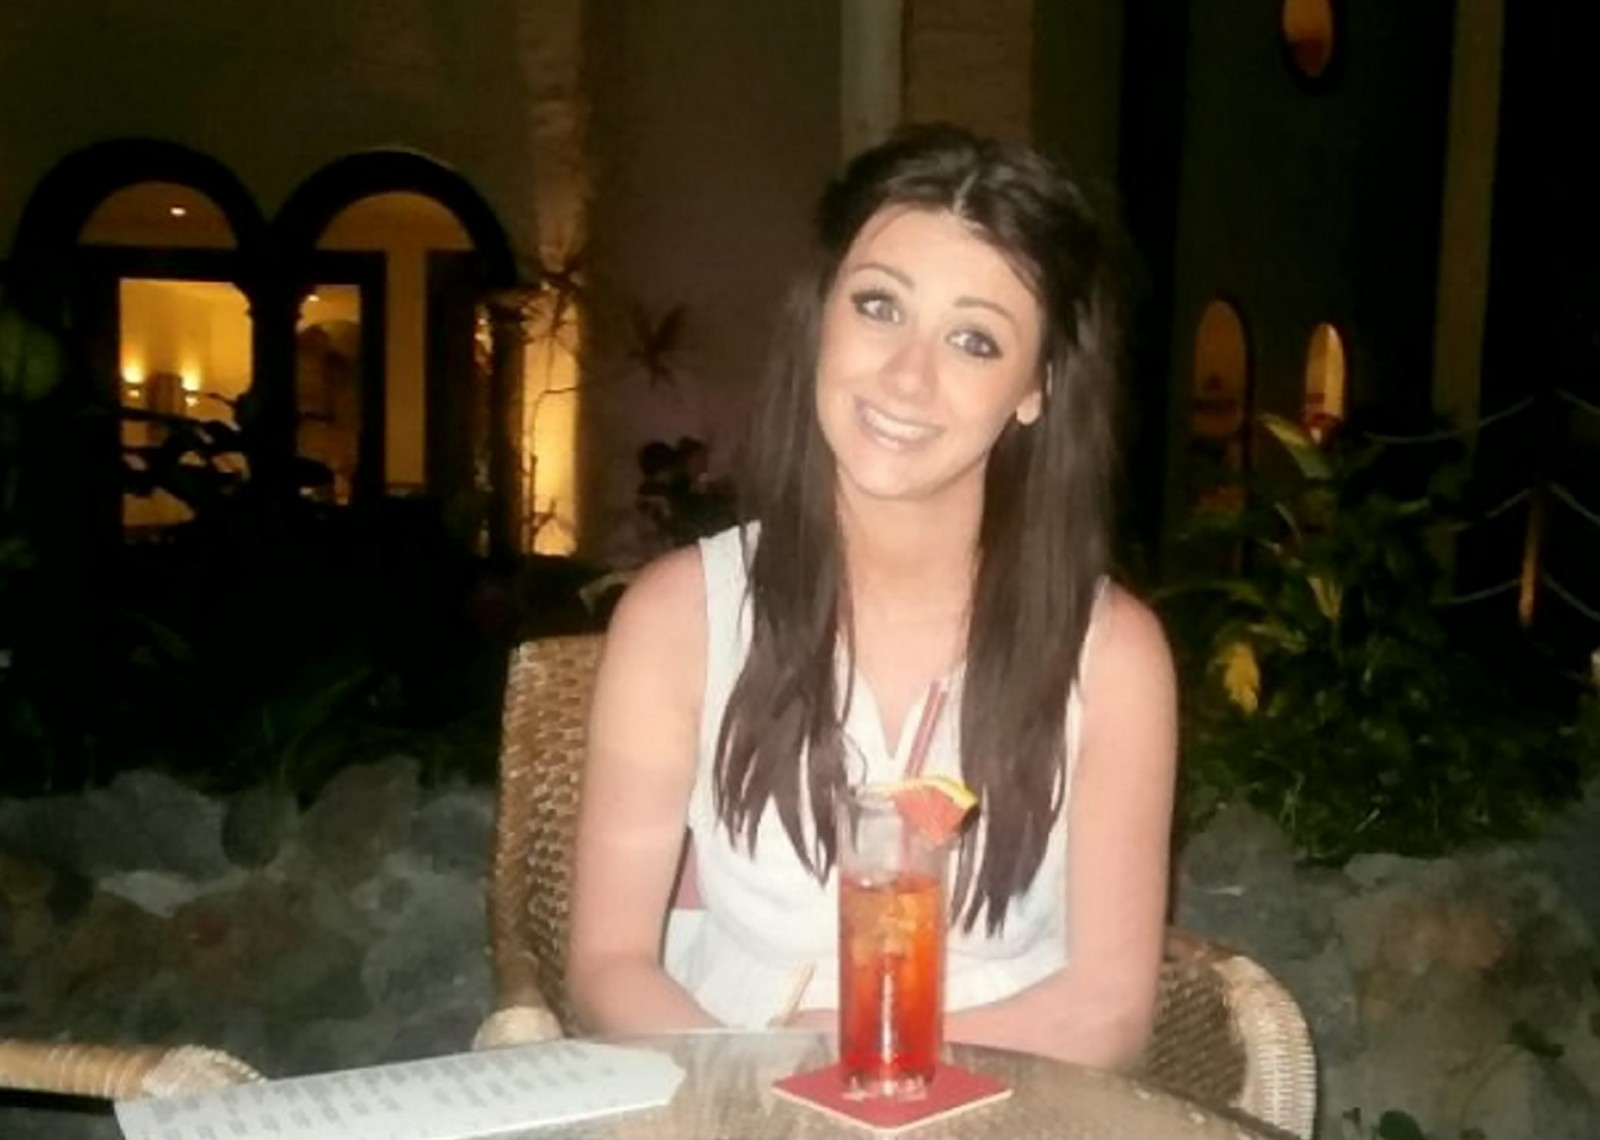 Tragic 19 year old dies from rare cancer after doctors tell her to 'stop Googling' her symptoms